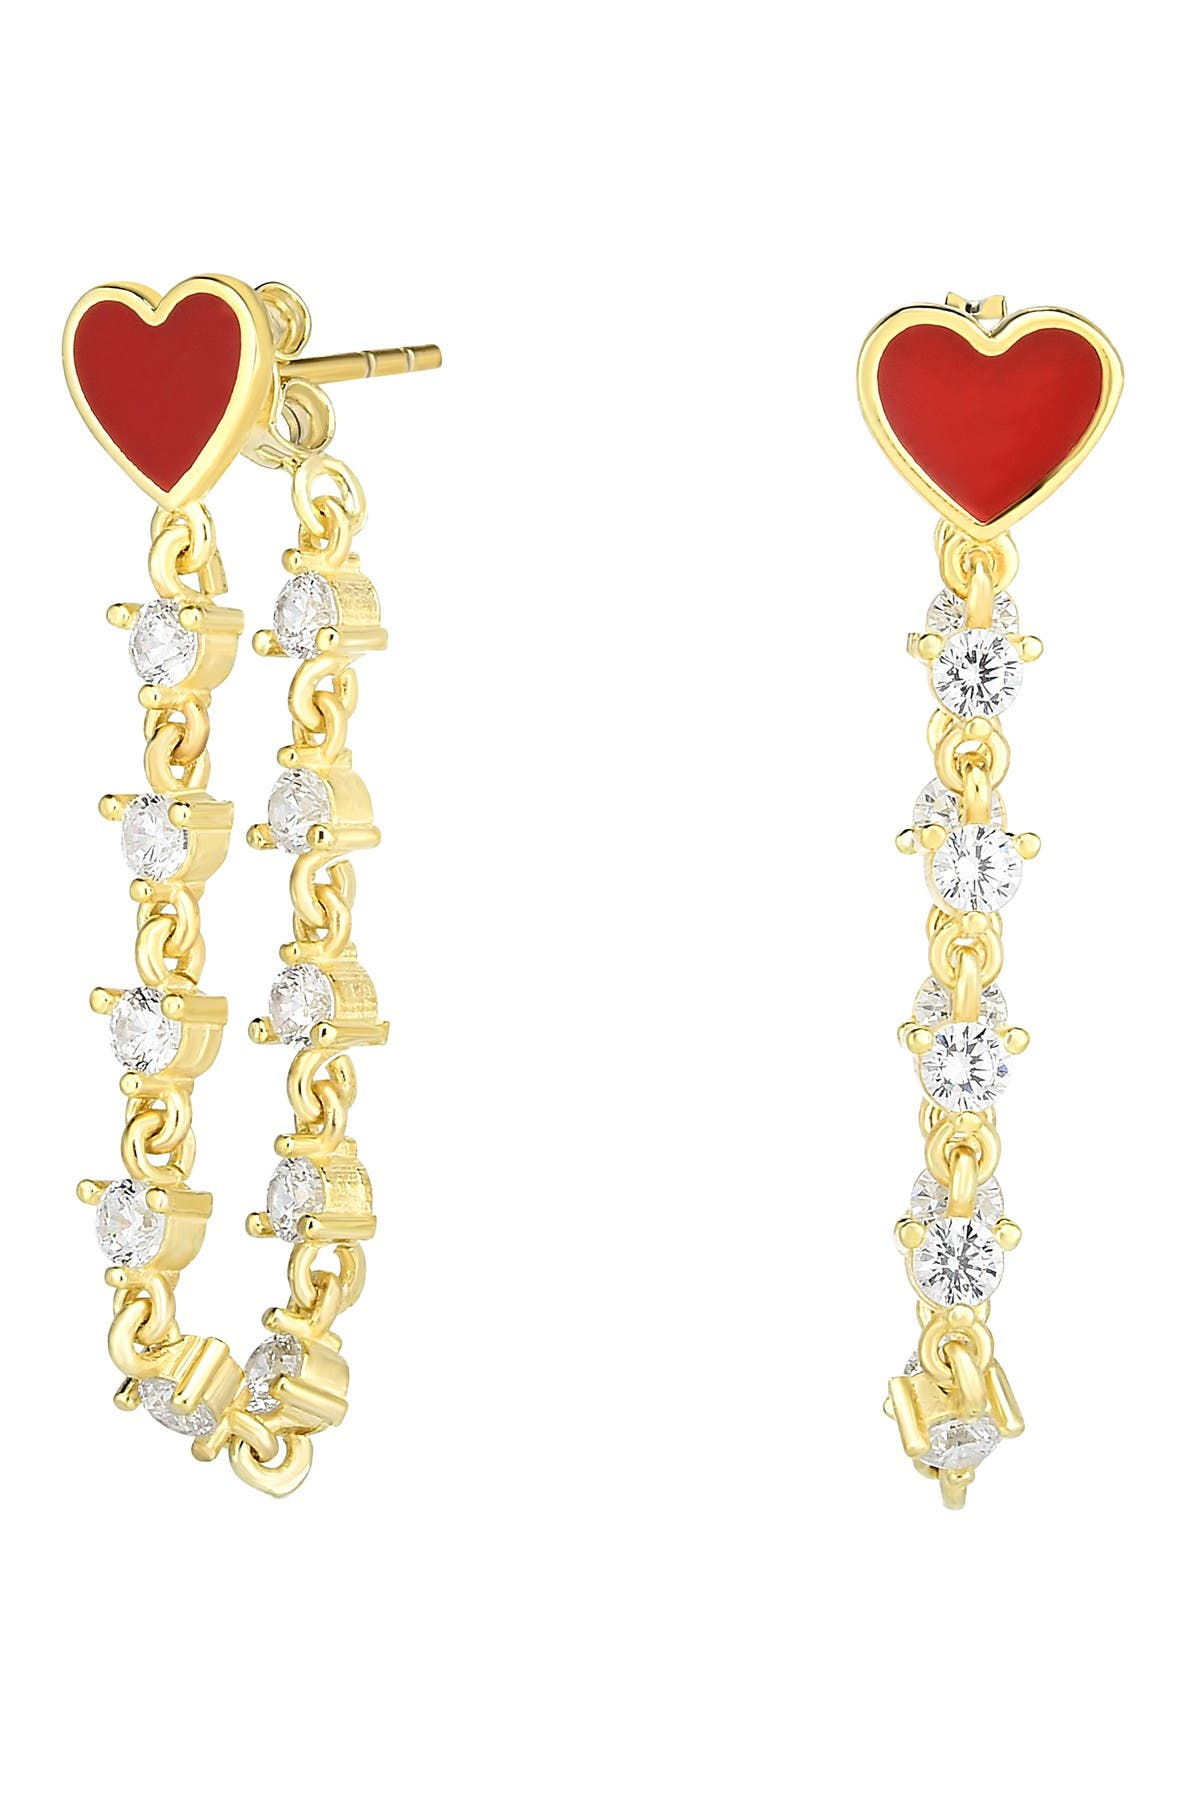 Sphera Milano 14K Yellow Gold Plated Sterling Silver CZ & Red Enamel Heart Front-Back Earrings at Nordstrom Rack